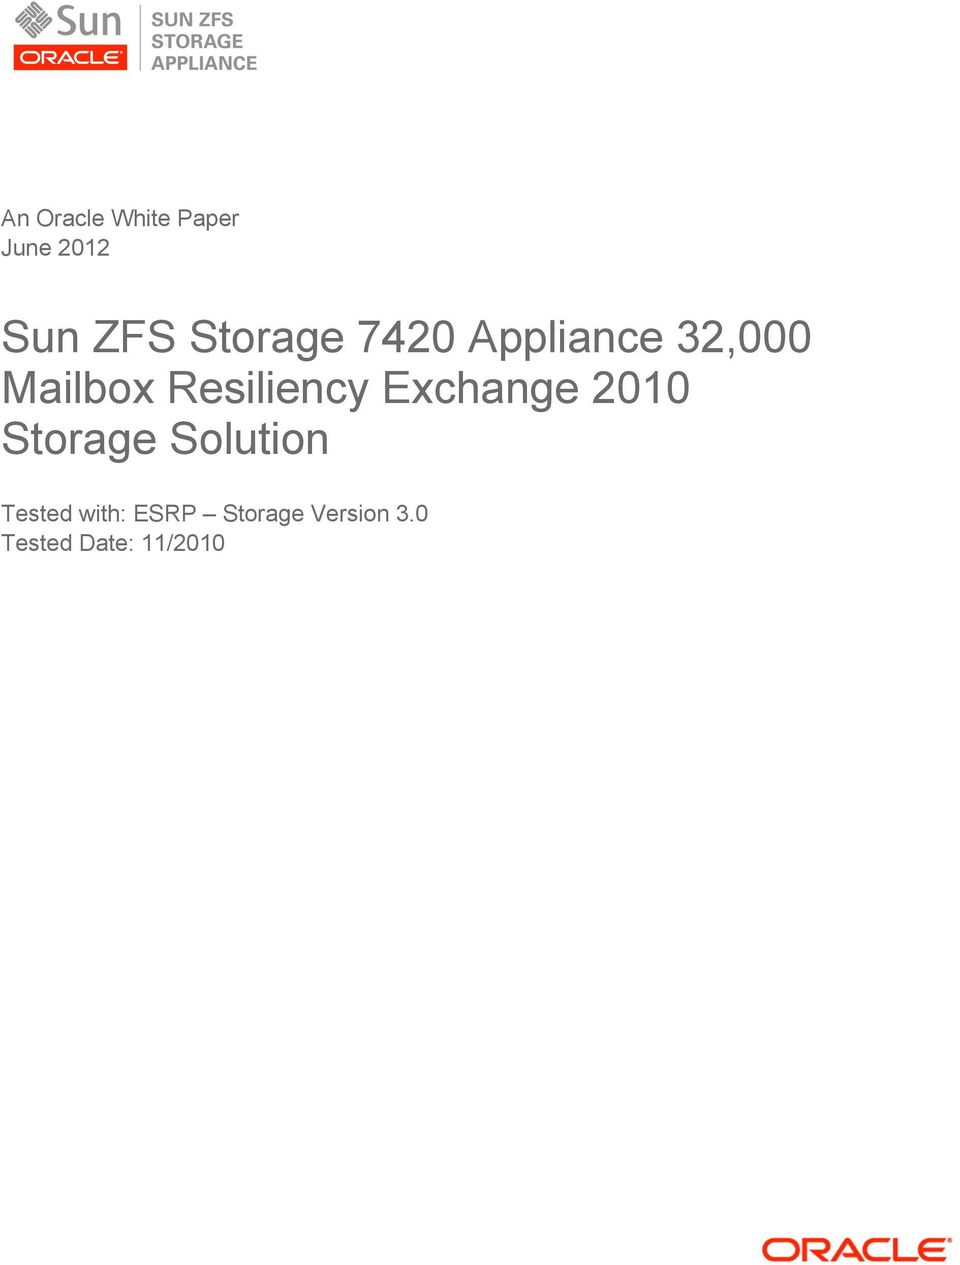 Resiliency Exchange 2010 Storage Solution